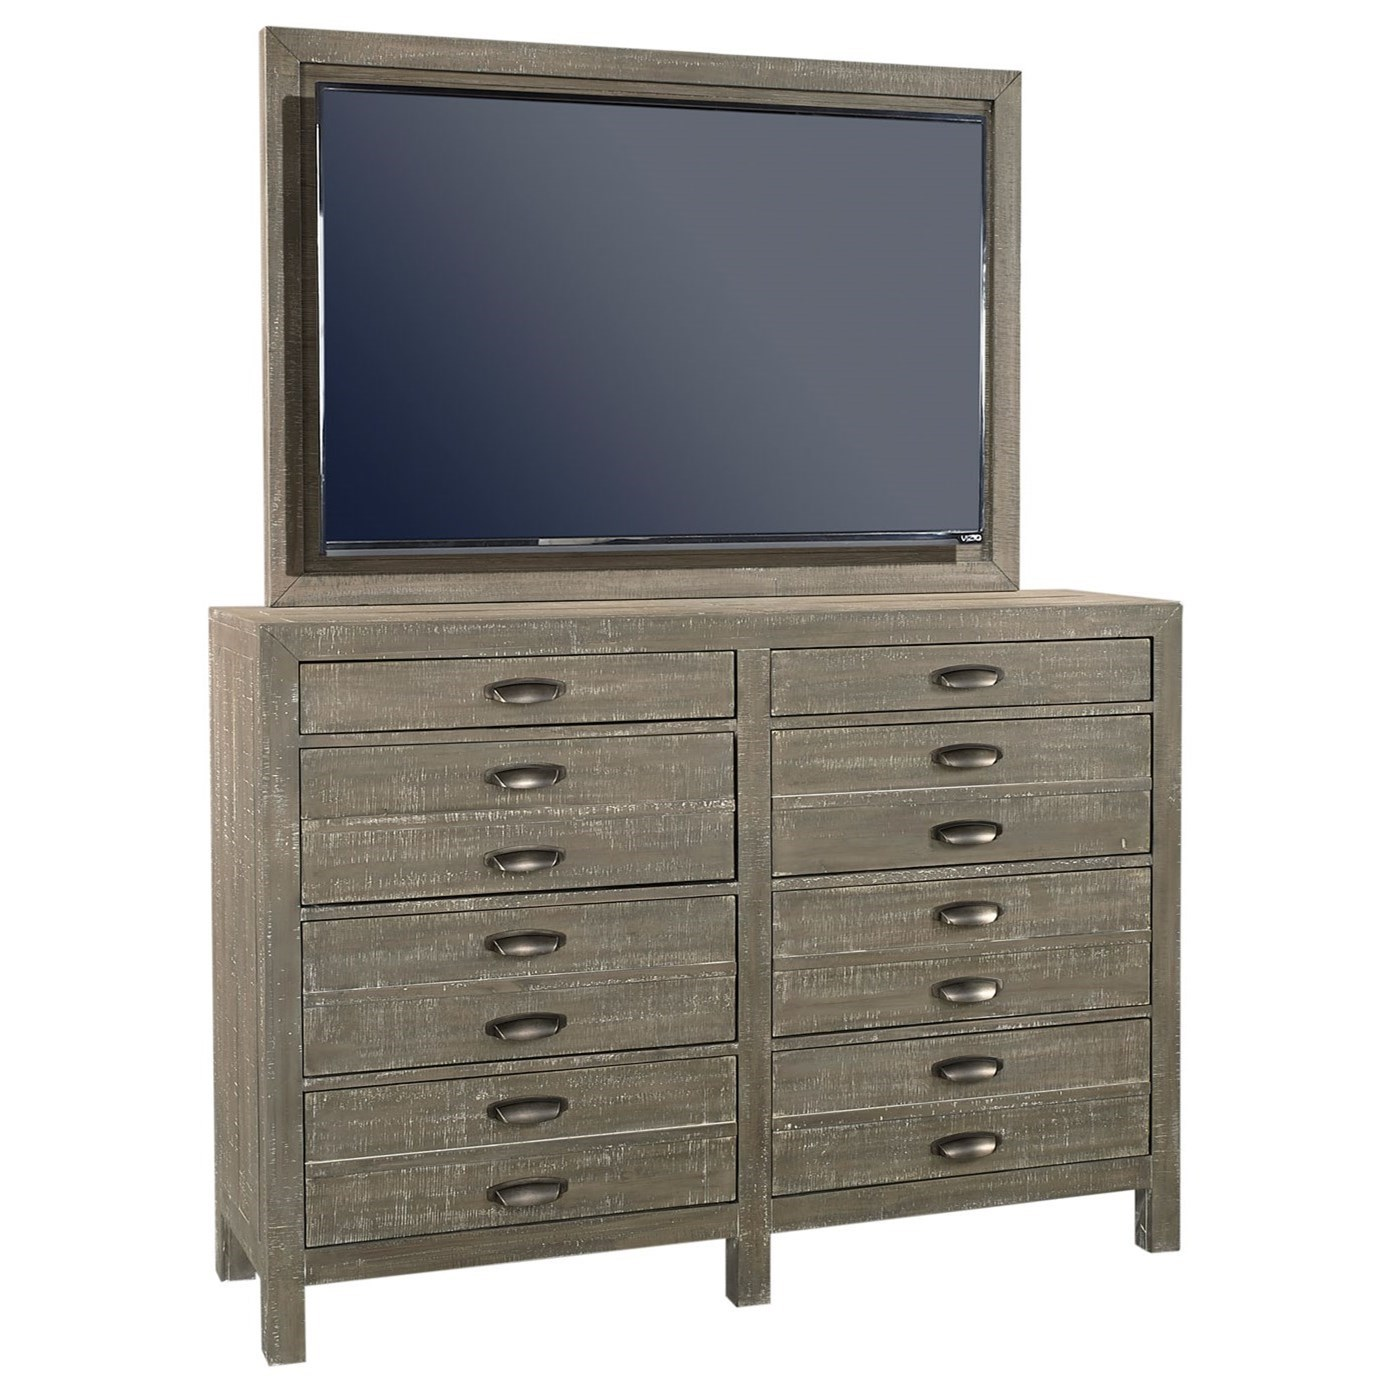 Radiata Chesser with TV Mount by Aspenhome at Walker's Furniture